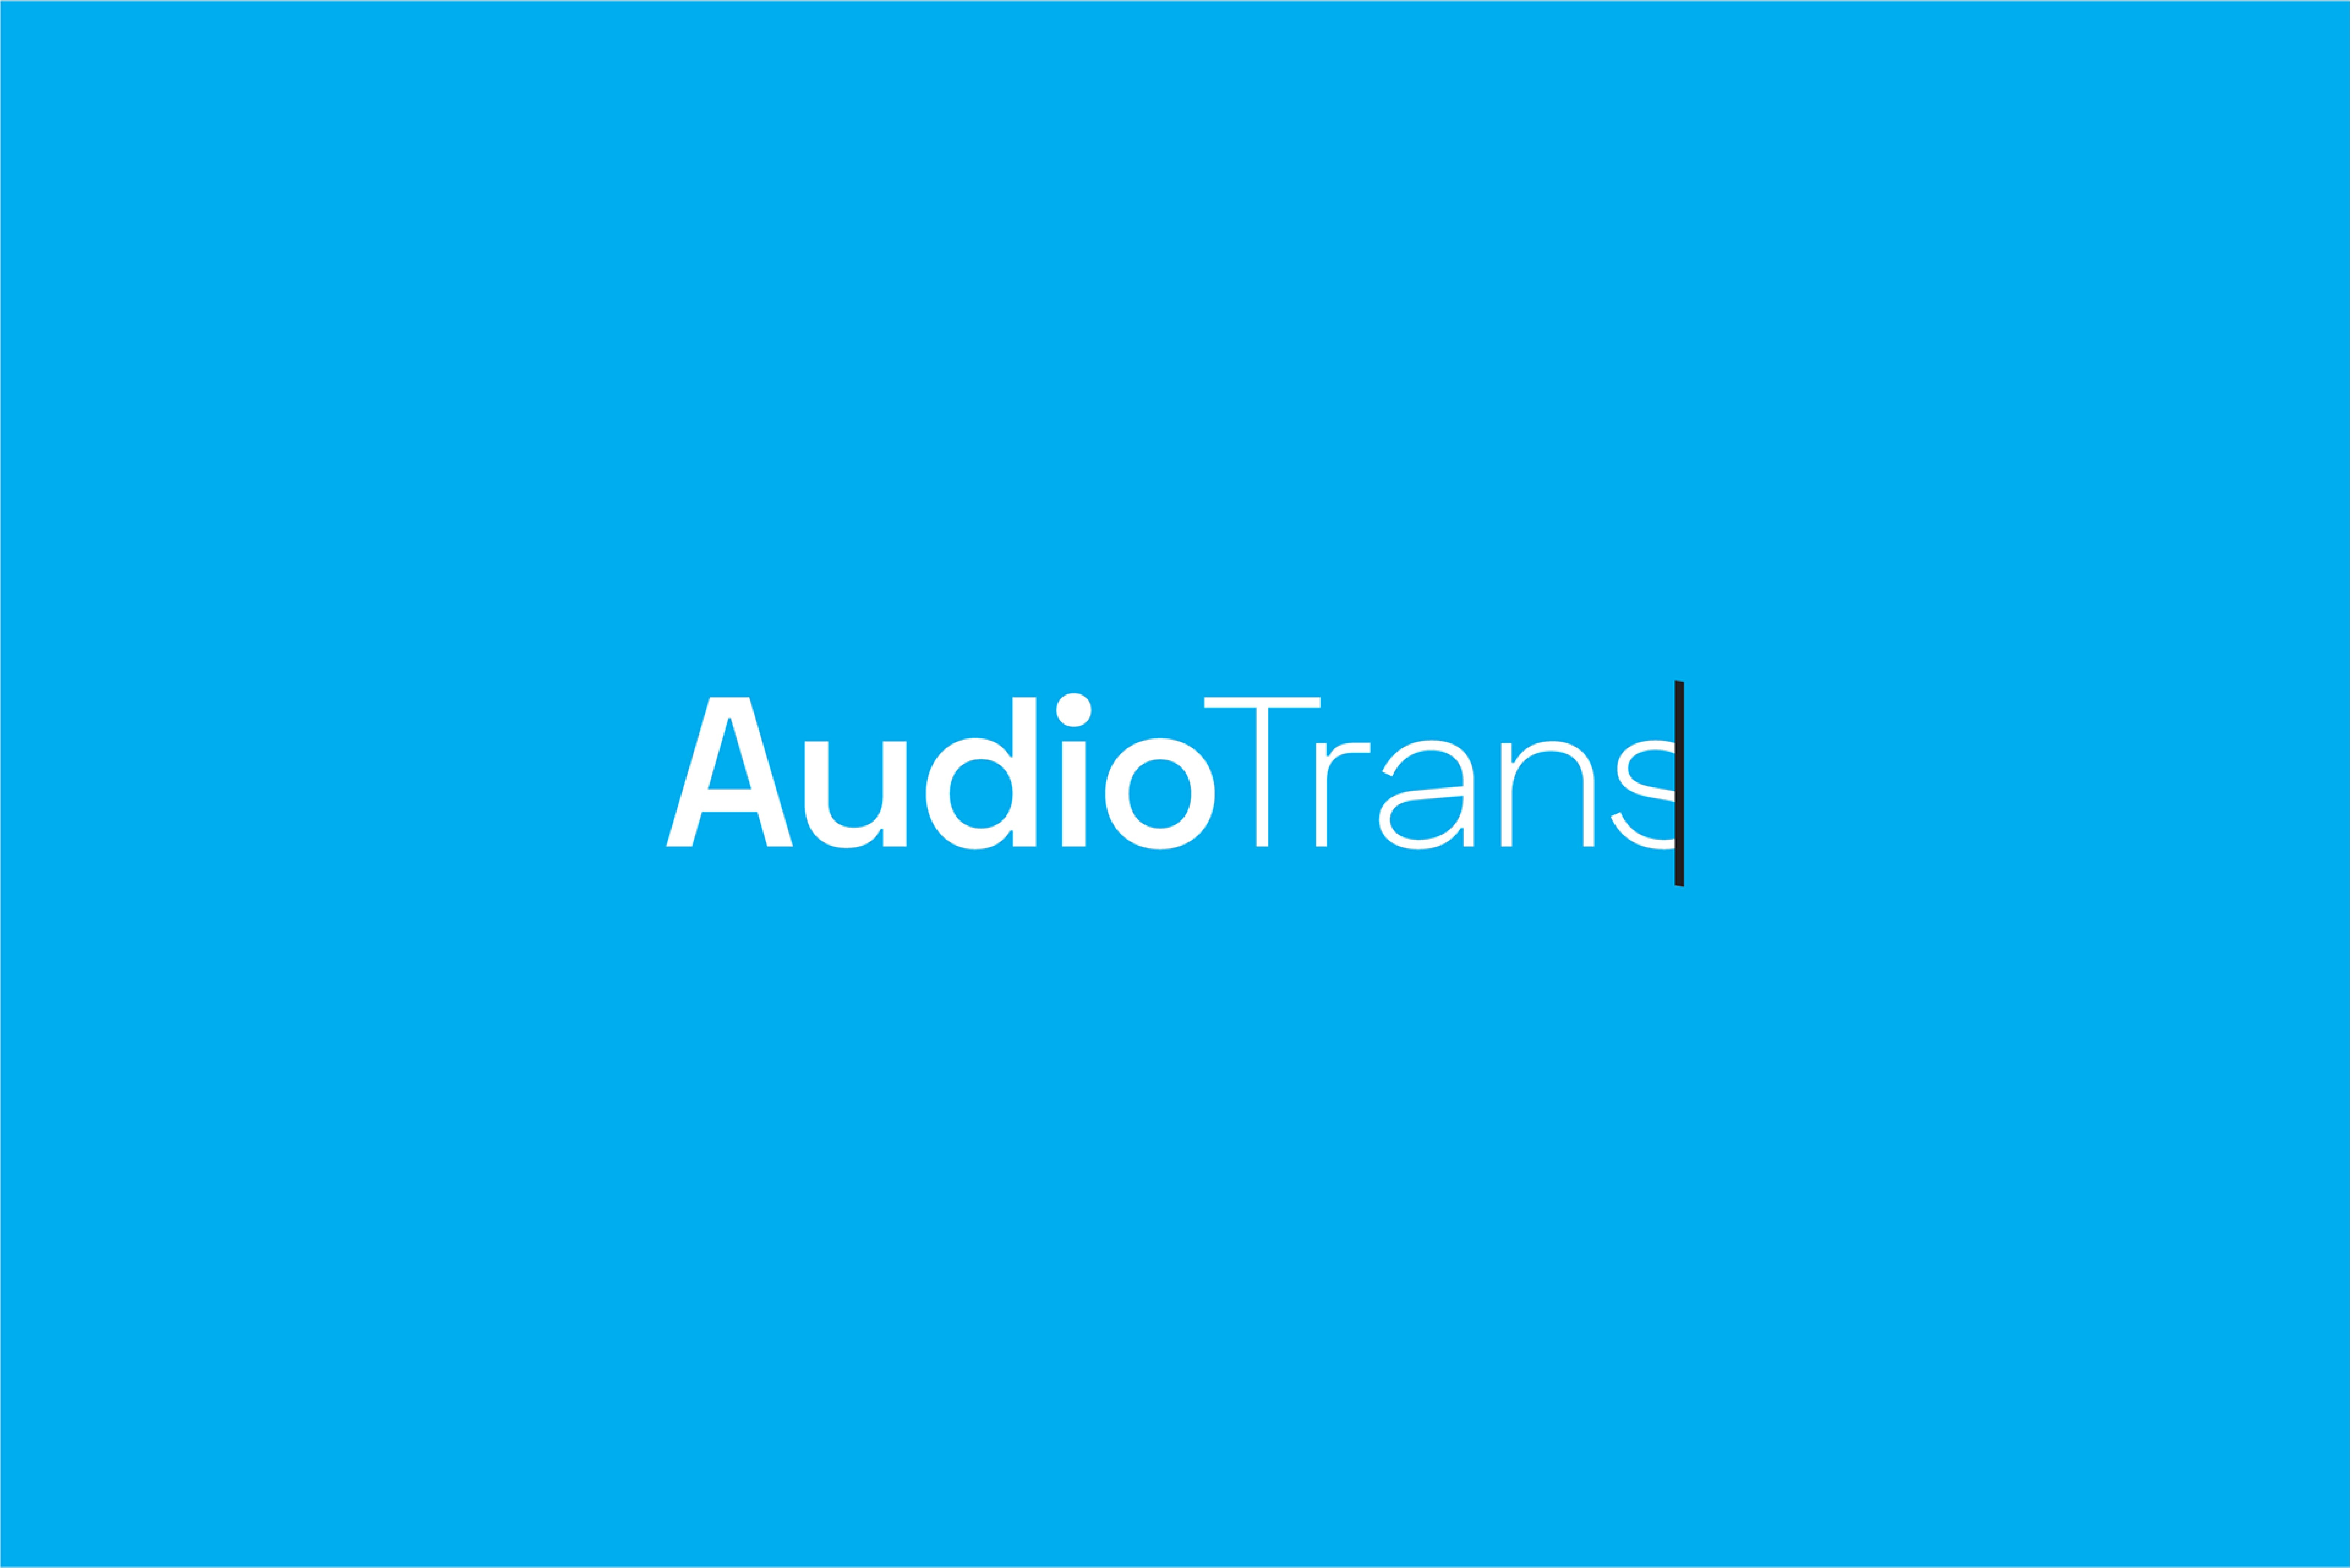 Cover image: AudioTrans Limited